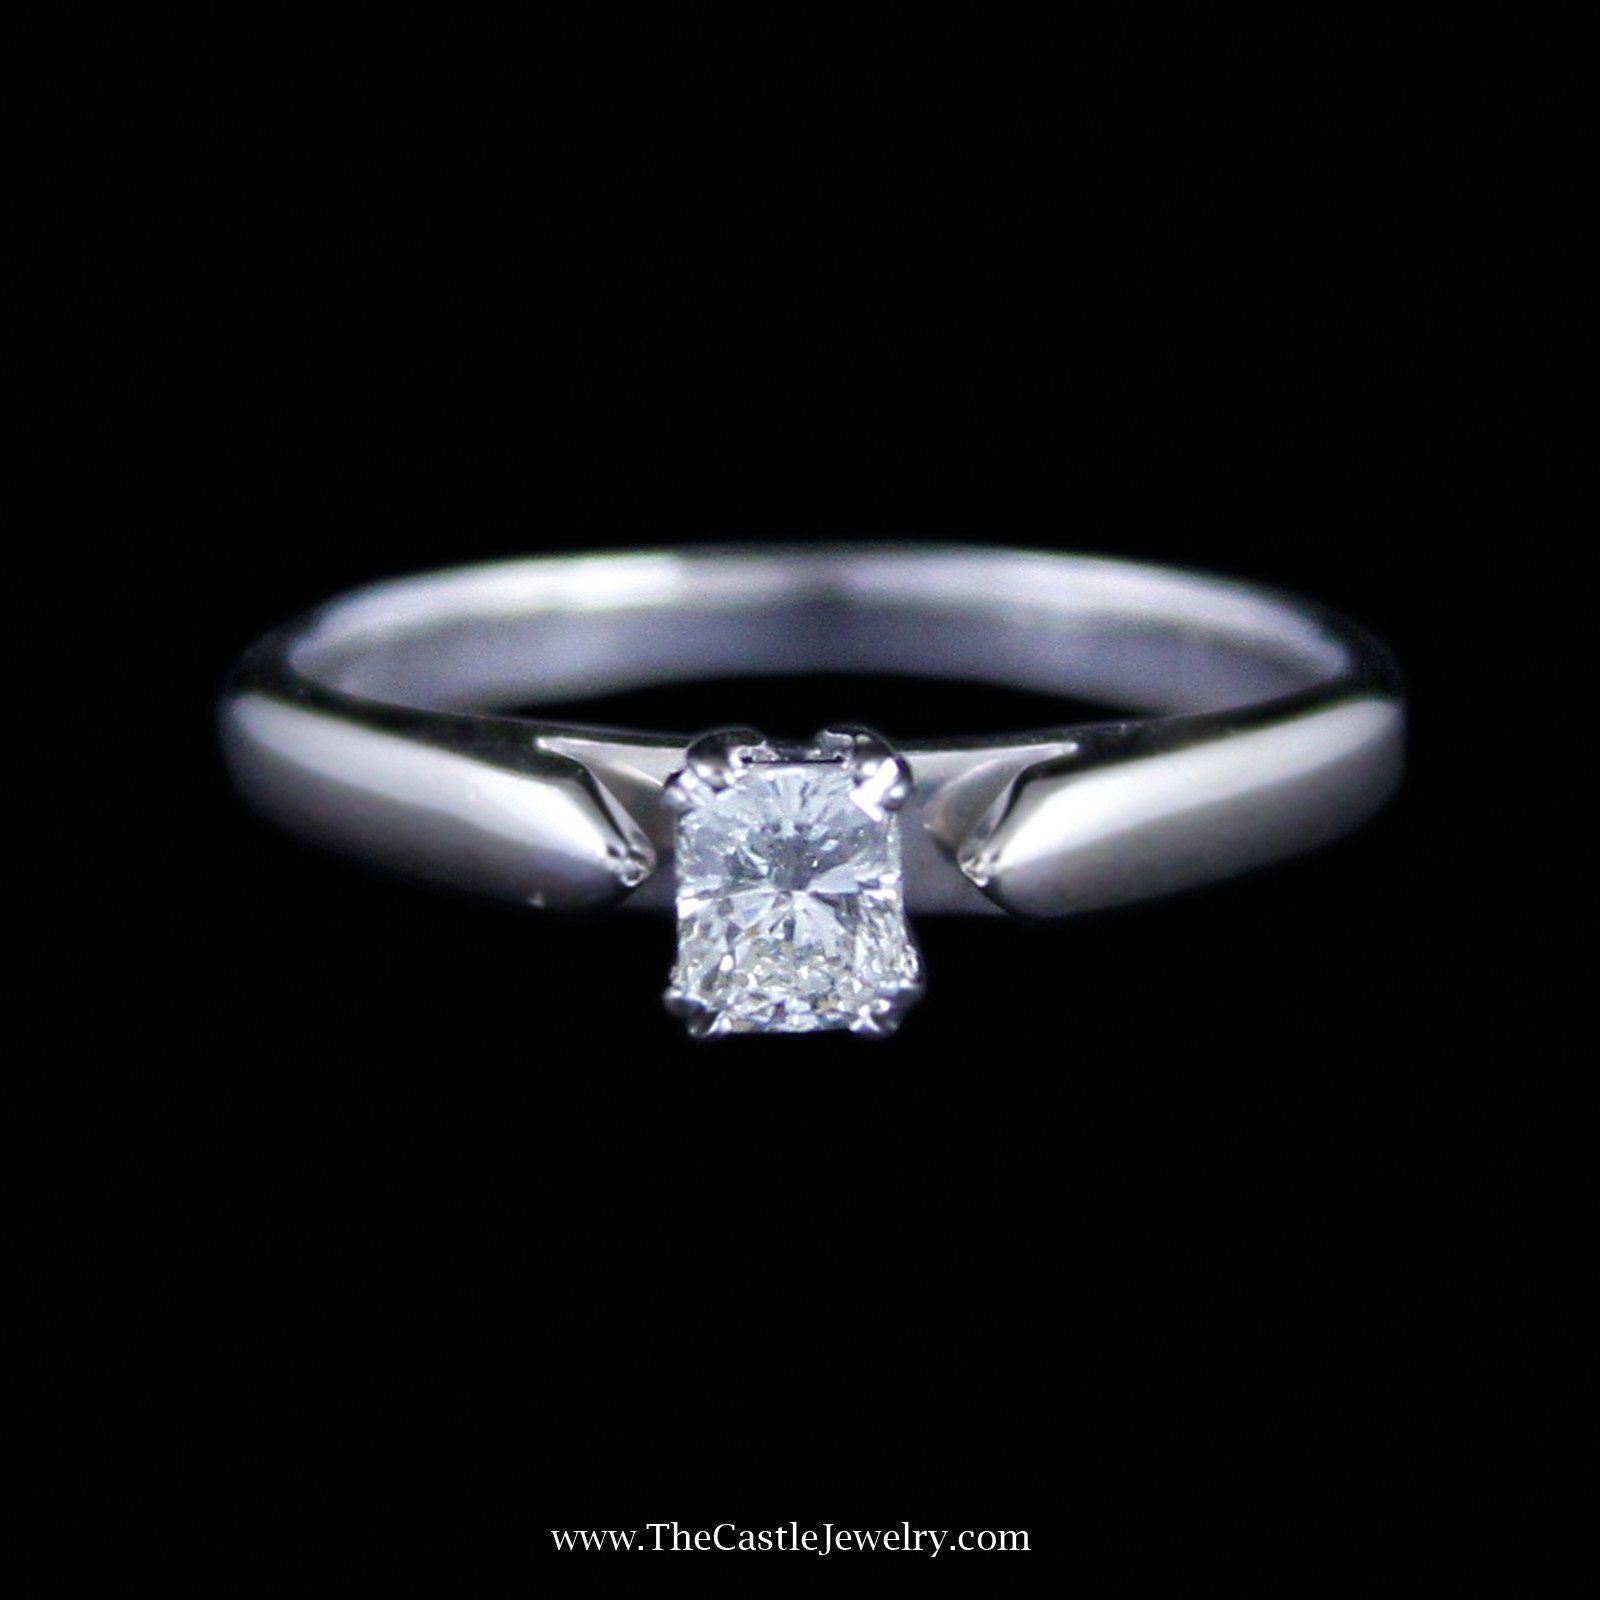 Gorgeous Radiant Cut Diamond Solitaire Engagement Ring in 14K White Gold